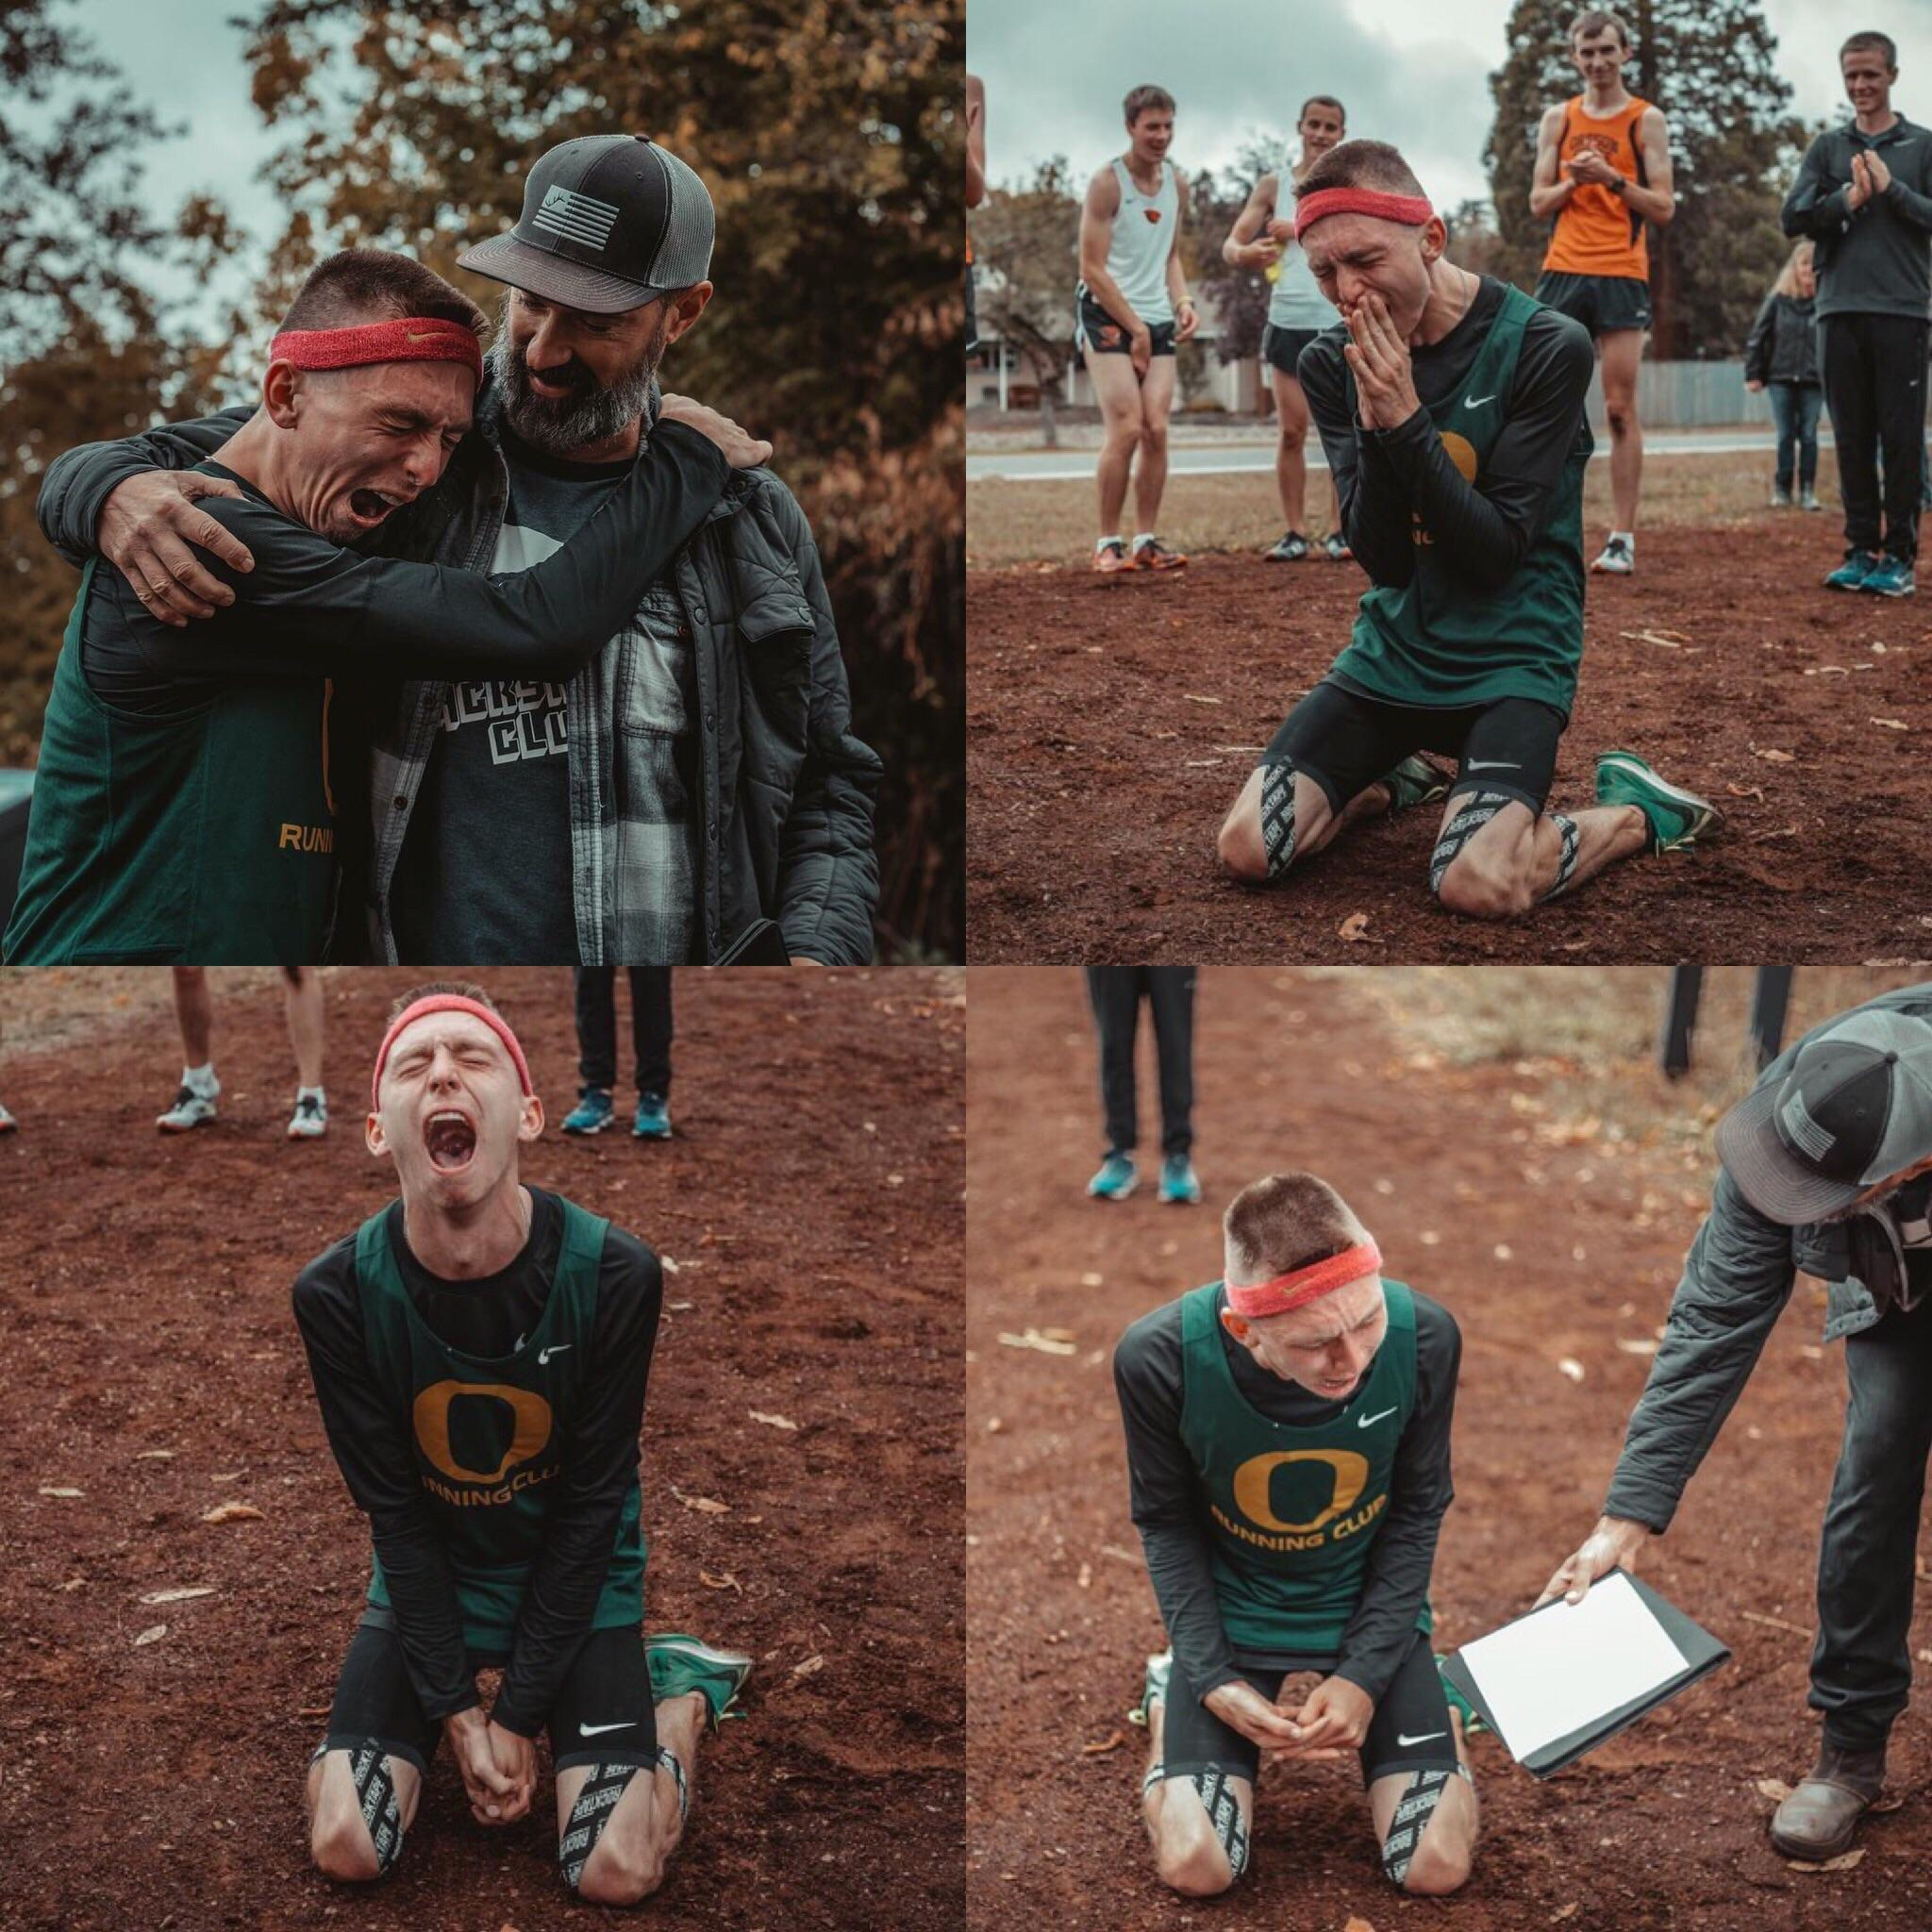 [Image] Justin Gallegos becomes Nike's first professional athletes with cerebral palsy when they surprise him with a contract. Beat your own limits.